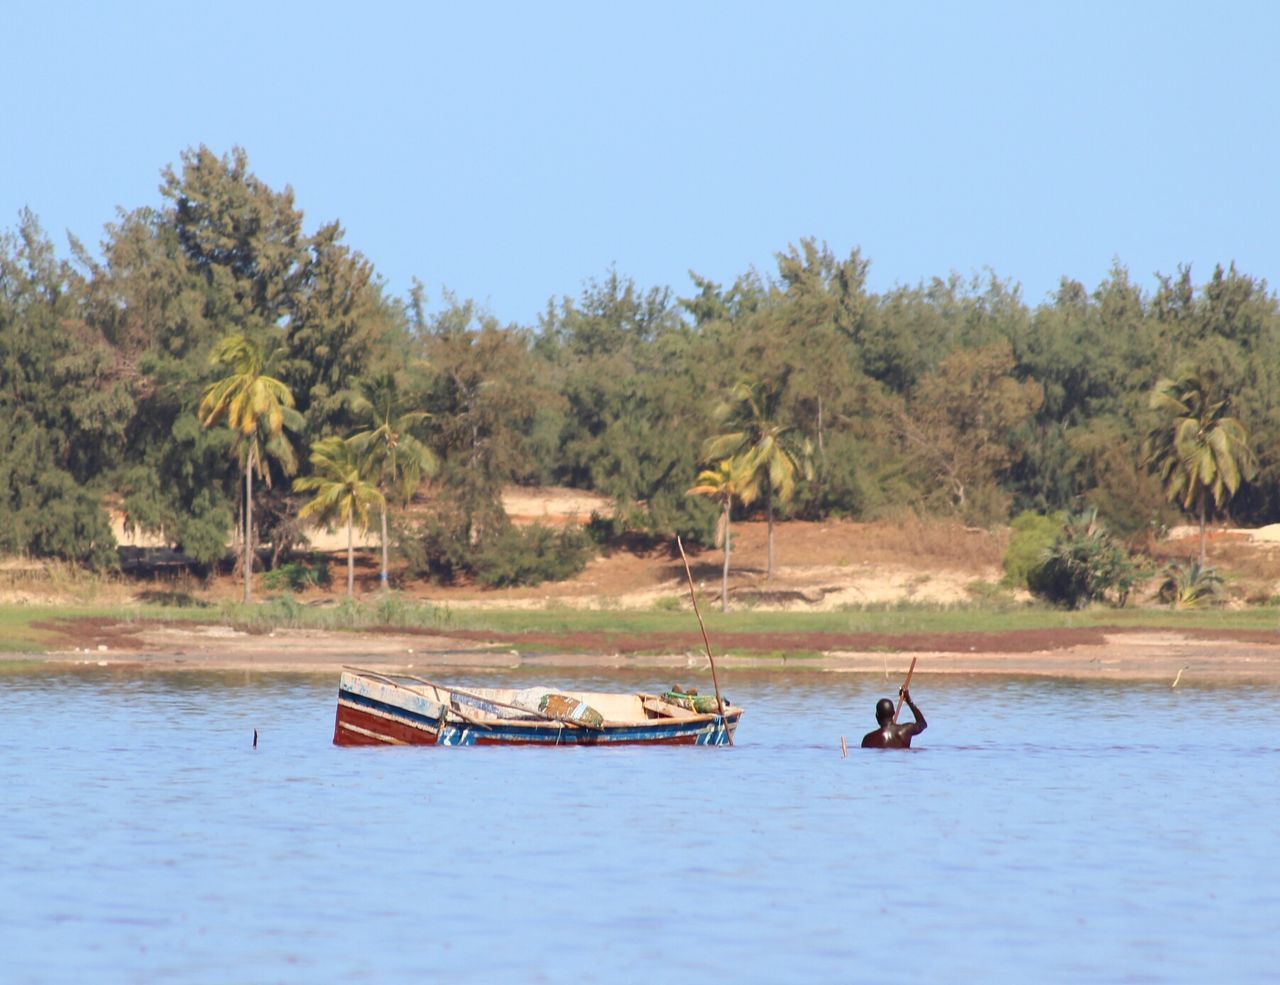 Water Tree Nautical Vessel Nature Transportation River Outdoors Palm Tree Day Clear Sky Landscape Adult Scenics Sky People Only Men Africa Senegal Raconets Lac Rose Viaje Escapada